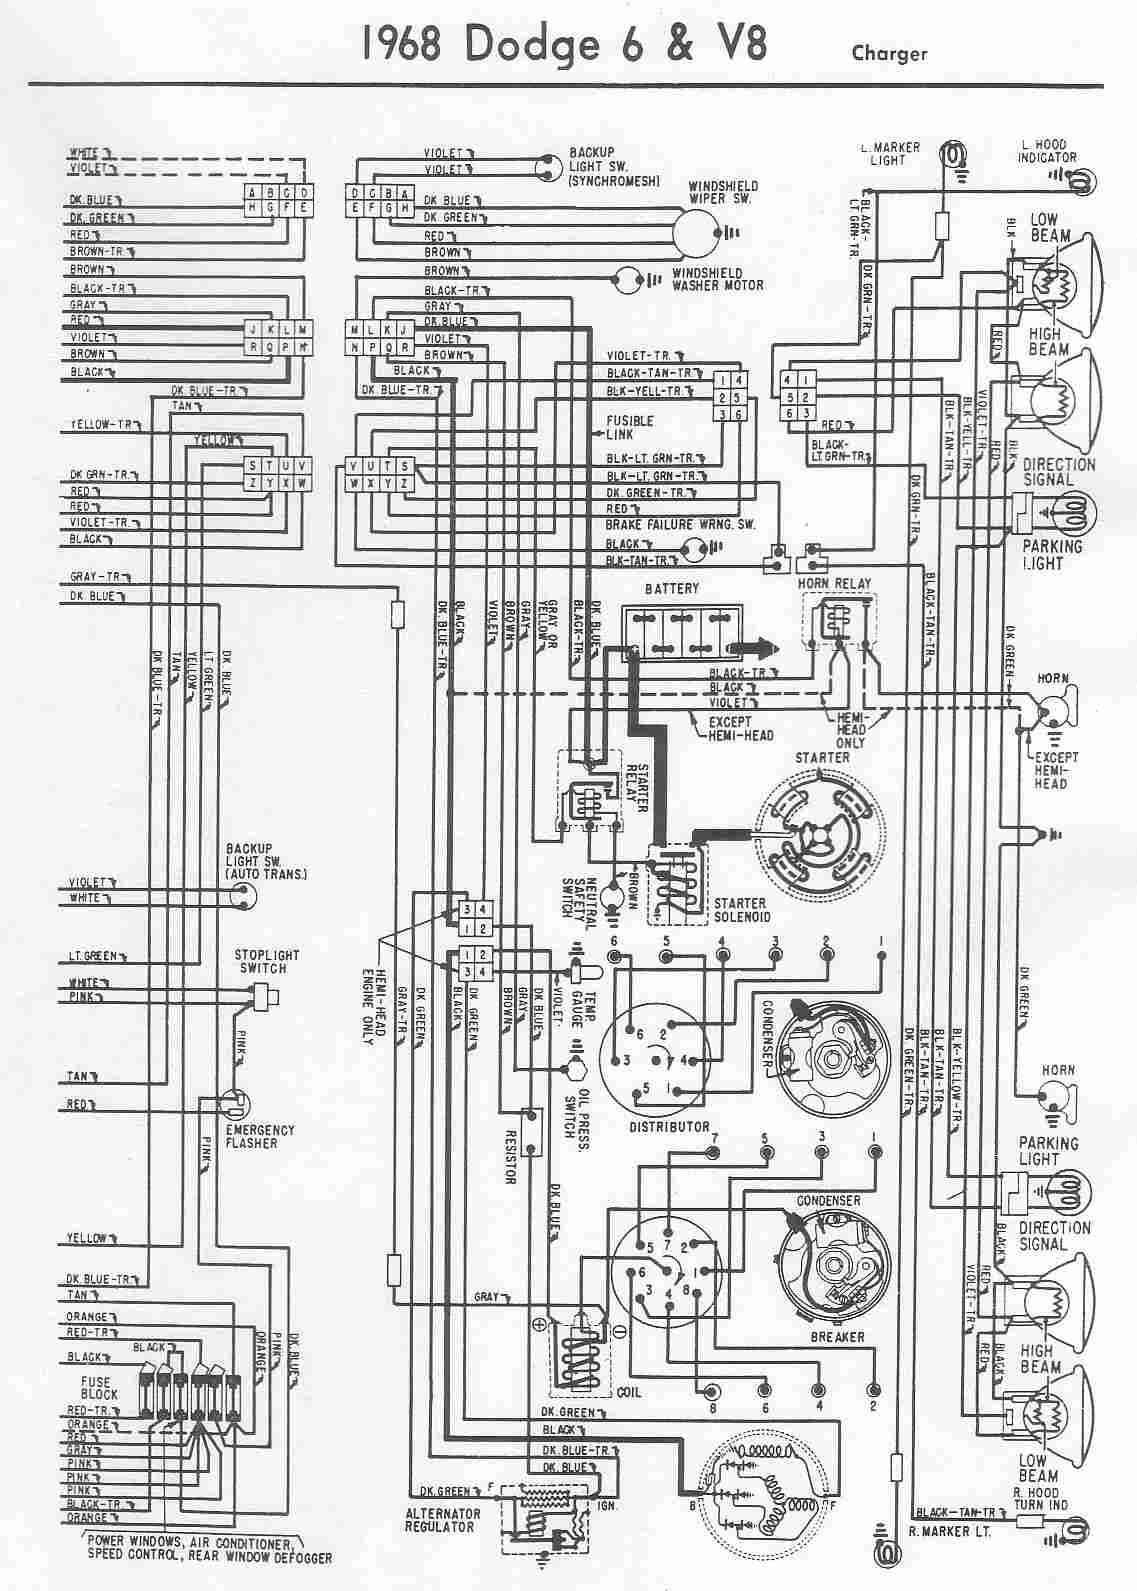 Dodge Car Manuals Wiring Diagrams Pdf Fault Codes Viper Diagram Free Download Electrical Of D100 Image 654 Kb